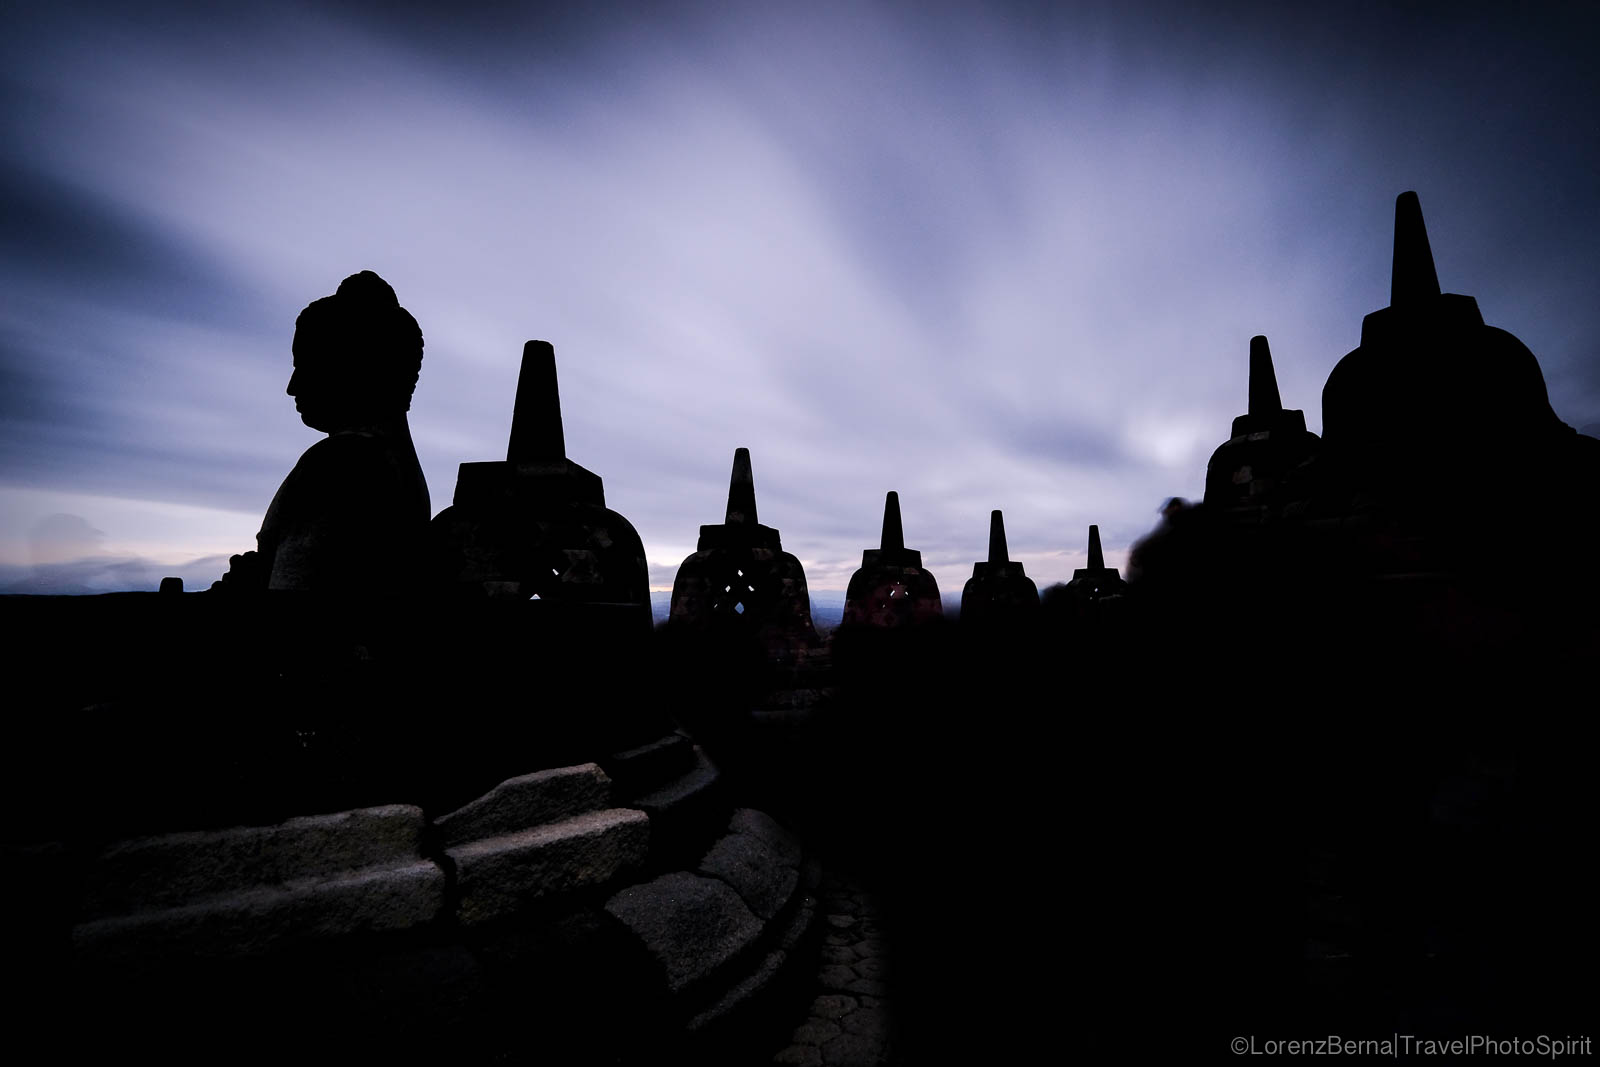 Silhouettes of the Borobodur Buddhist Temple in Java - Indonesia Travel Photography by Lorenz Berna